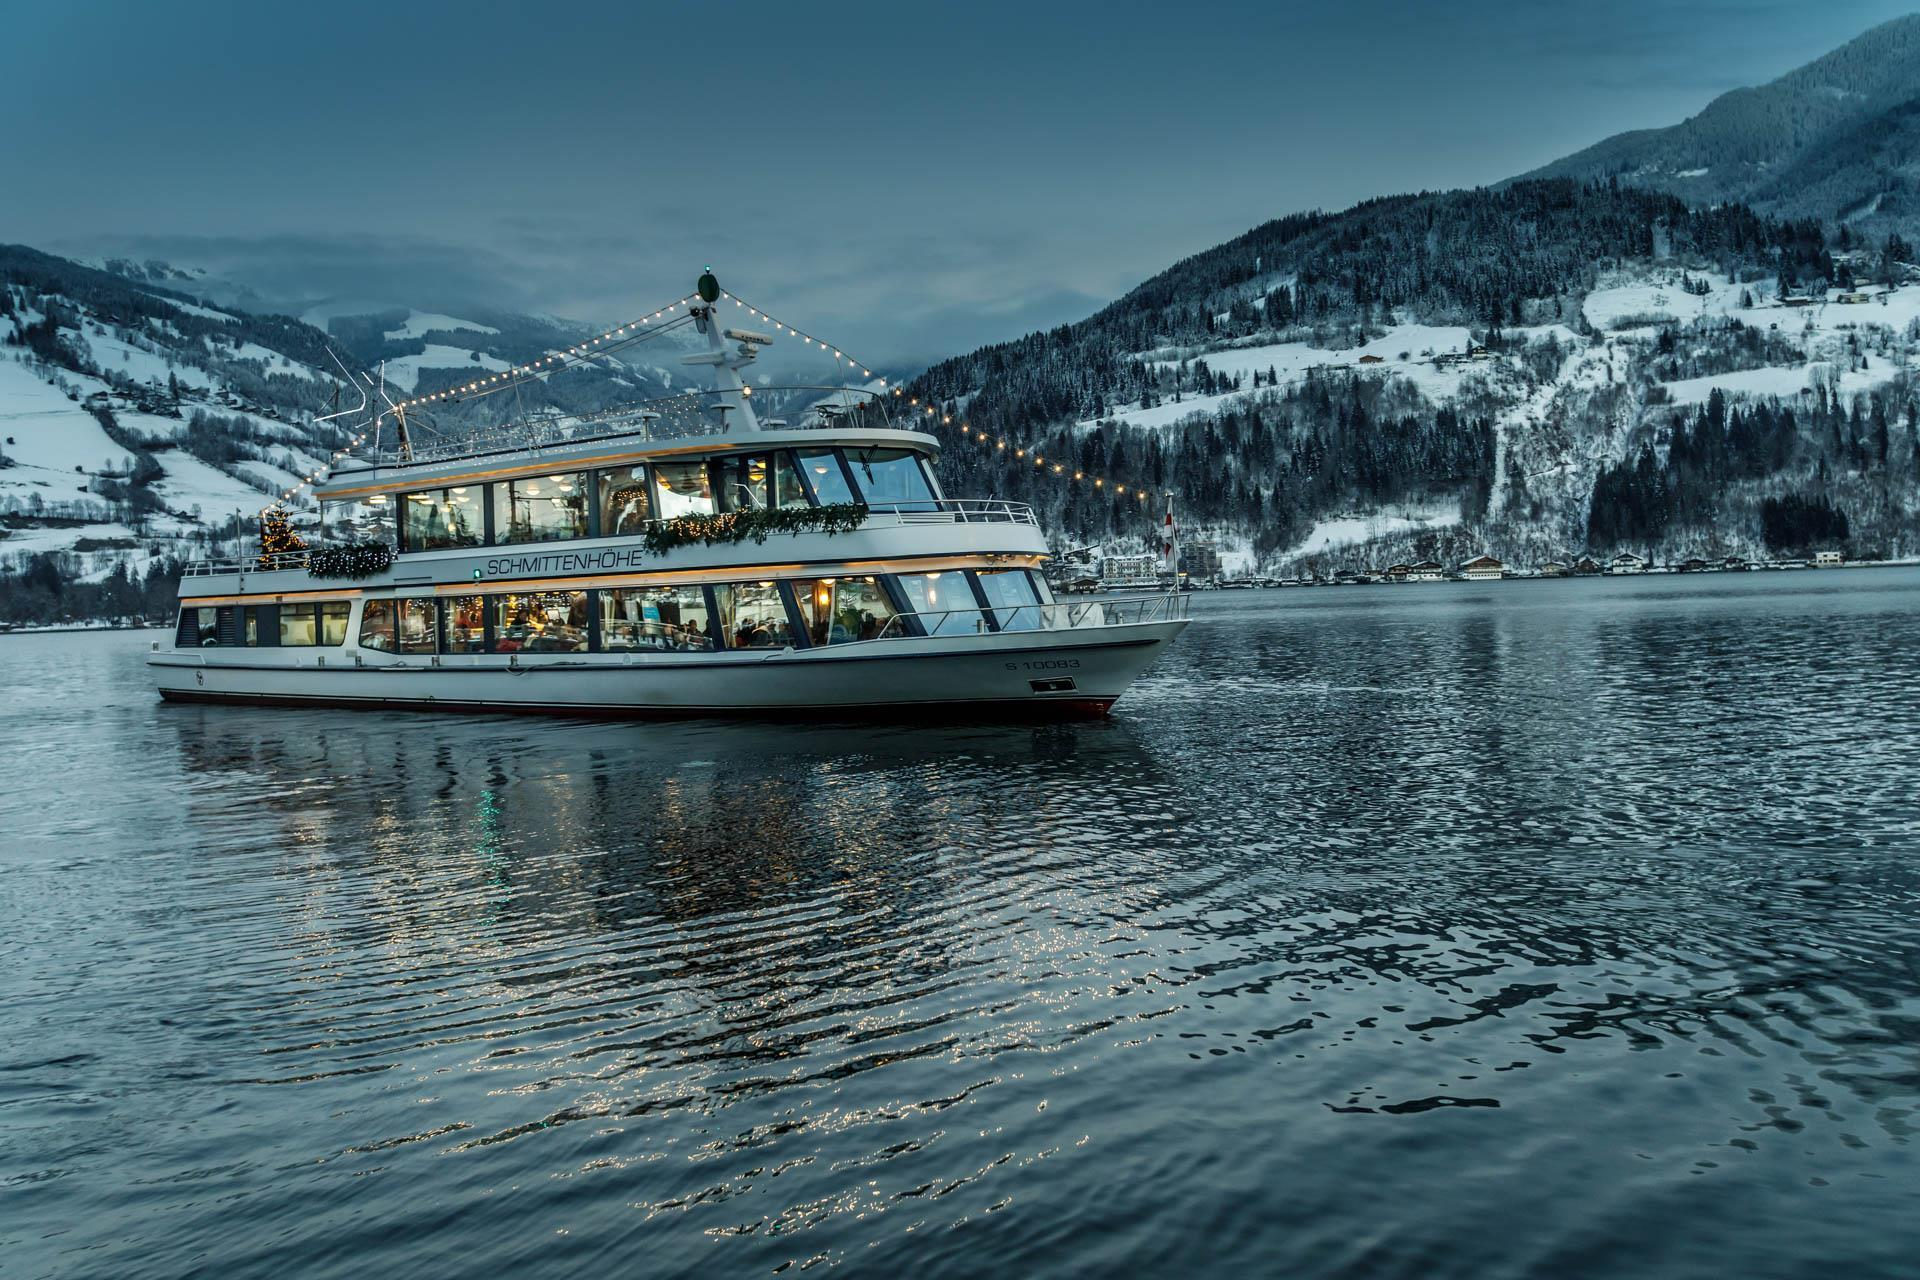 Star-cruises on lake Zell - 30/11/2019, from 1:30 PM